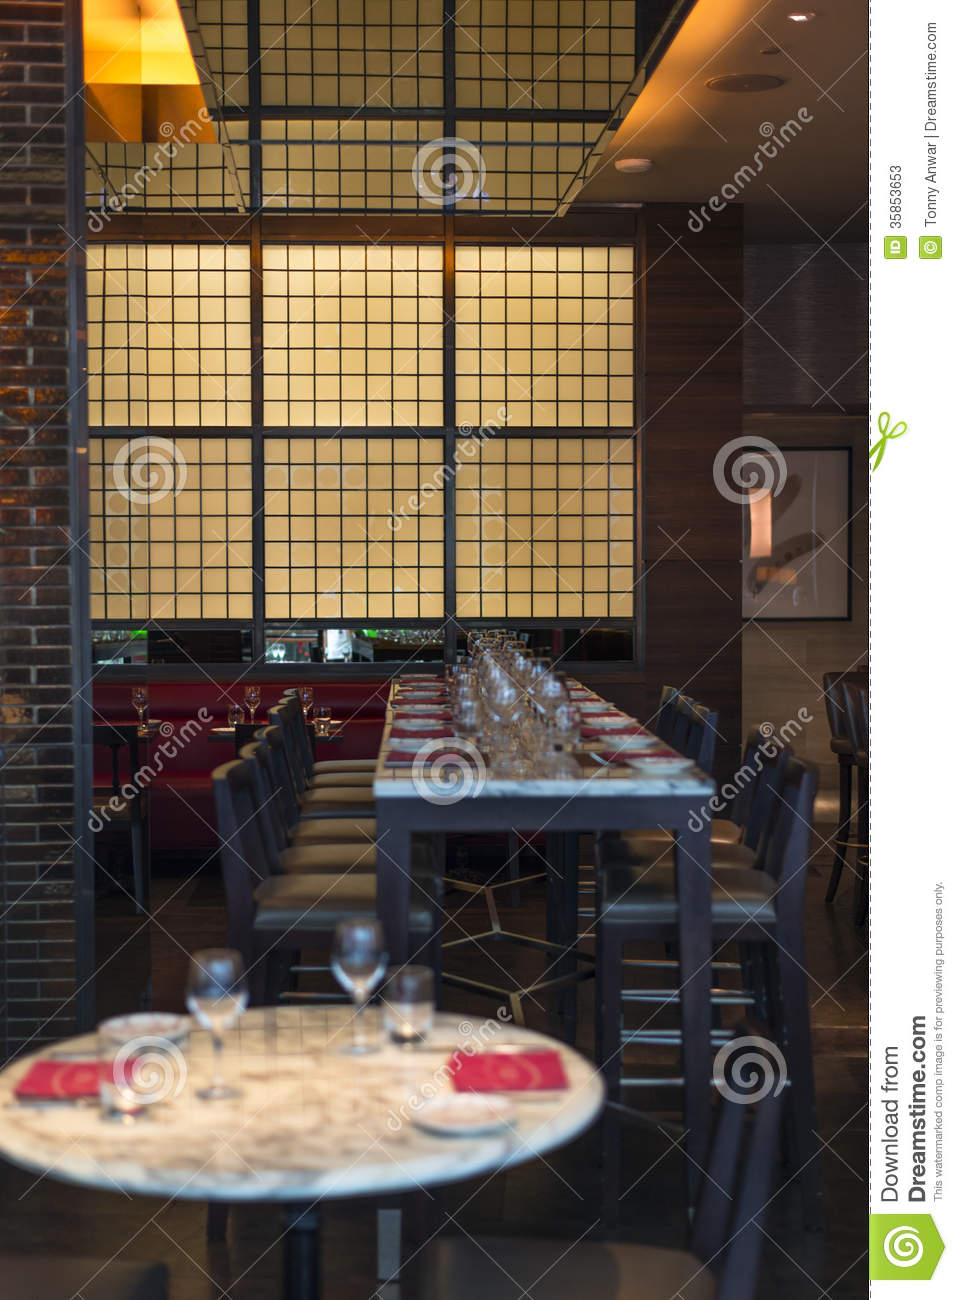 Restaurant setup stock photos image